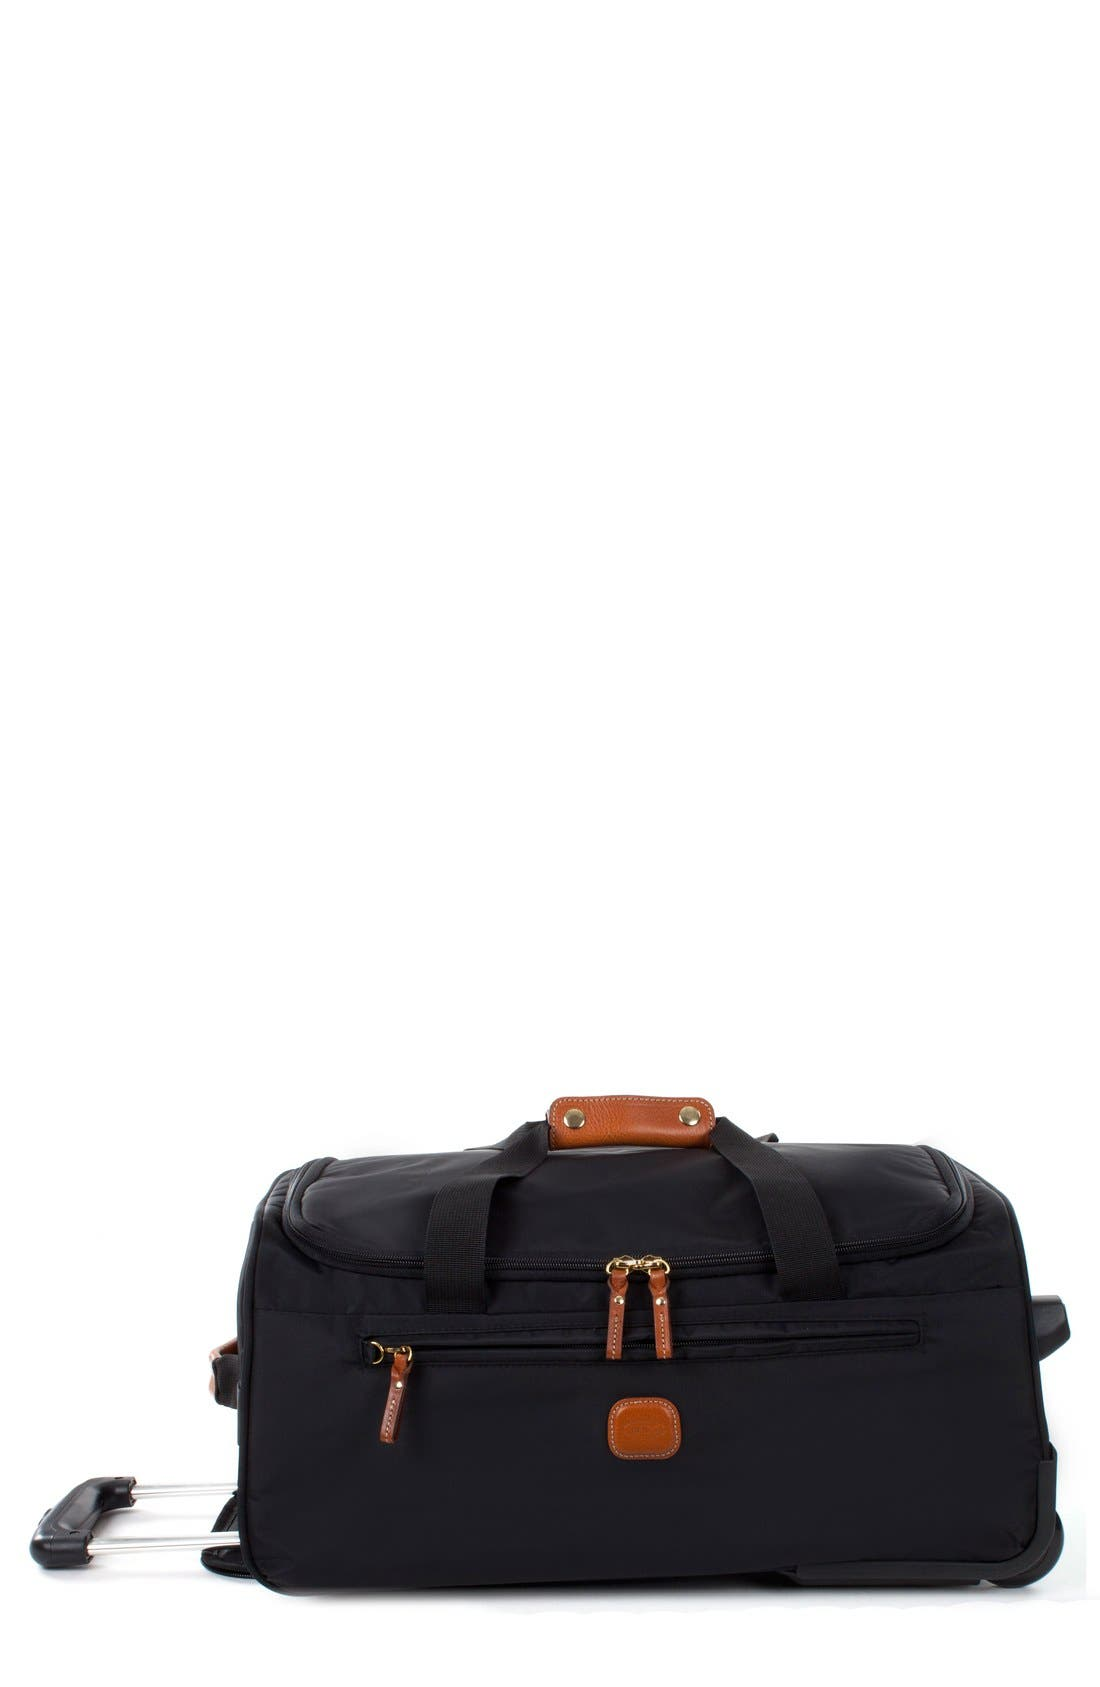 BRIC'S Brics X-Bag 21-Inch Rolling Carry-On Duffle Bag, Main, color, BLACK